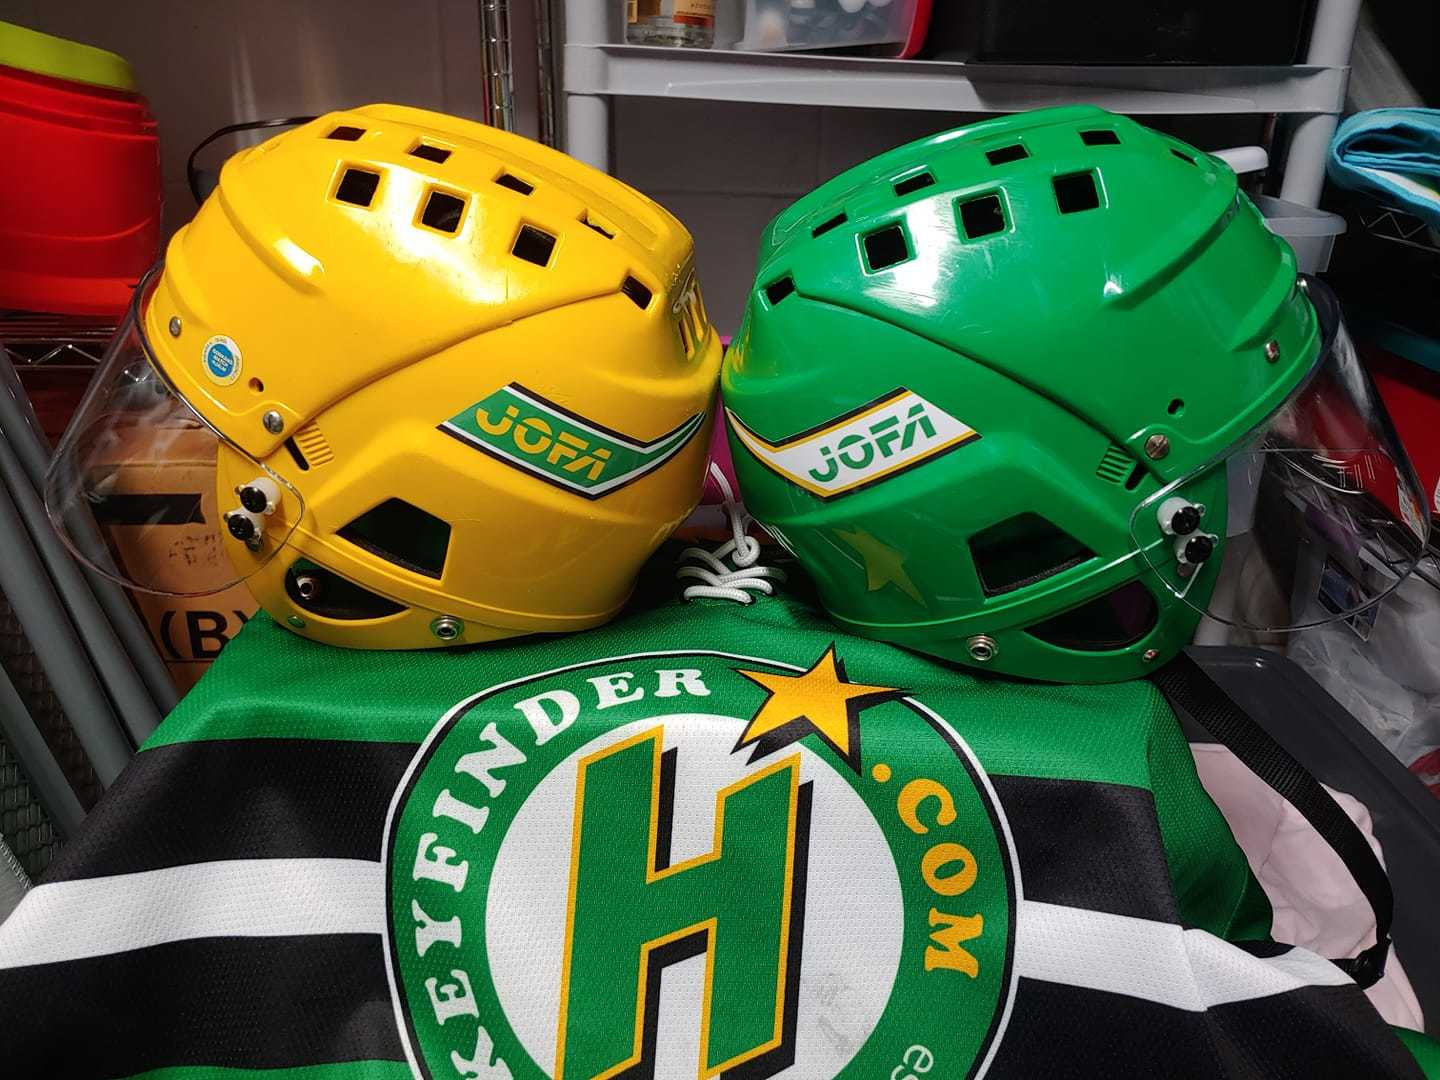 Keith's photograph of their Helmet Stickers